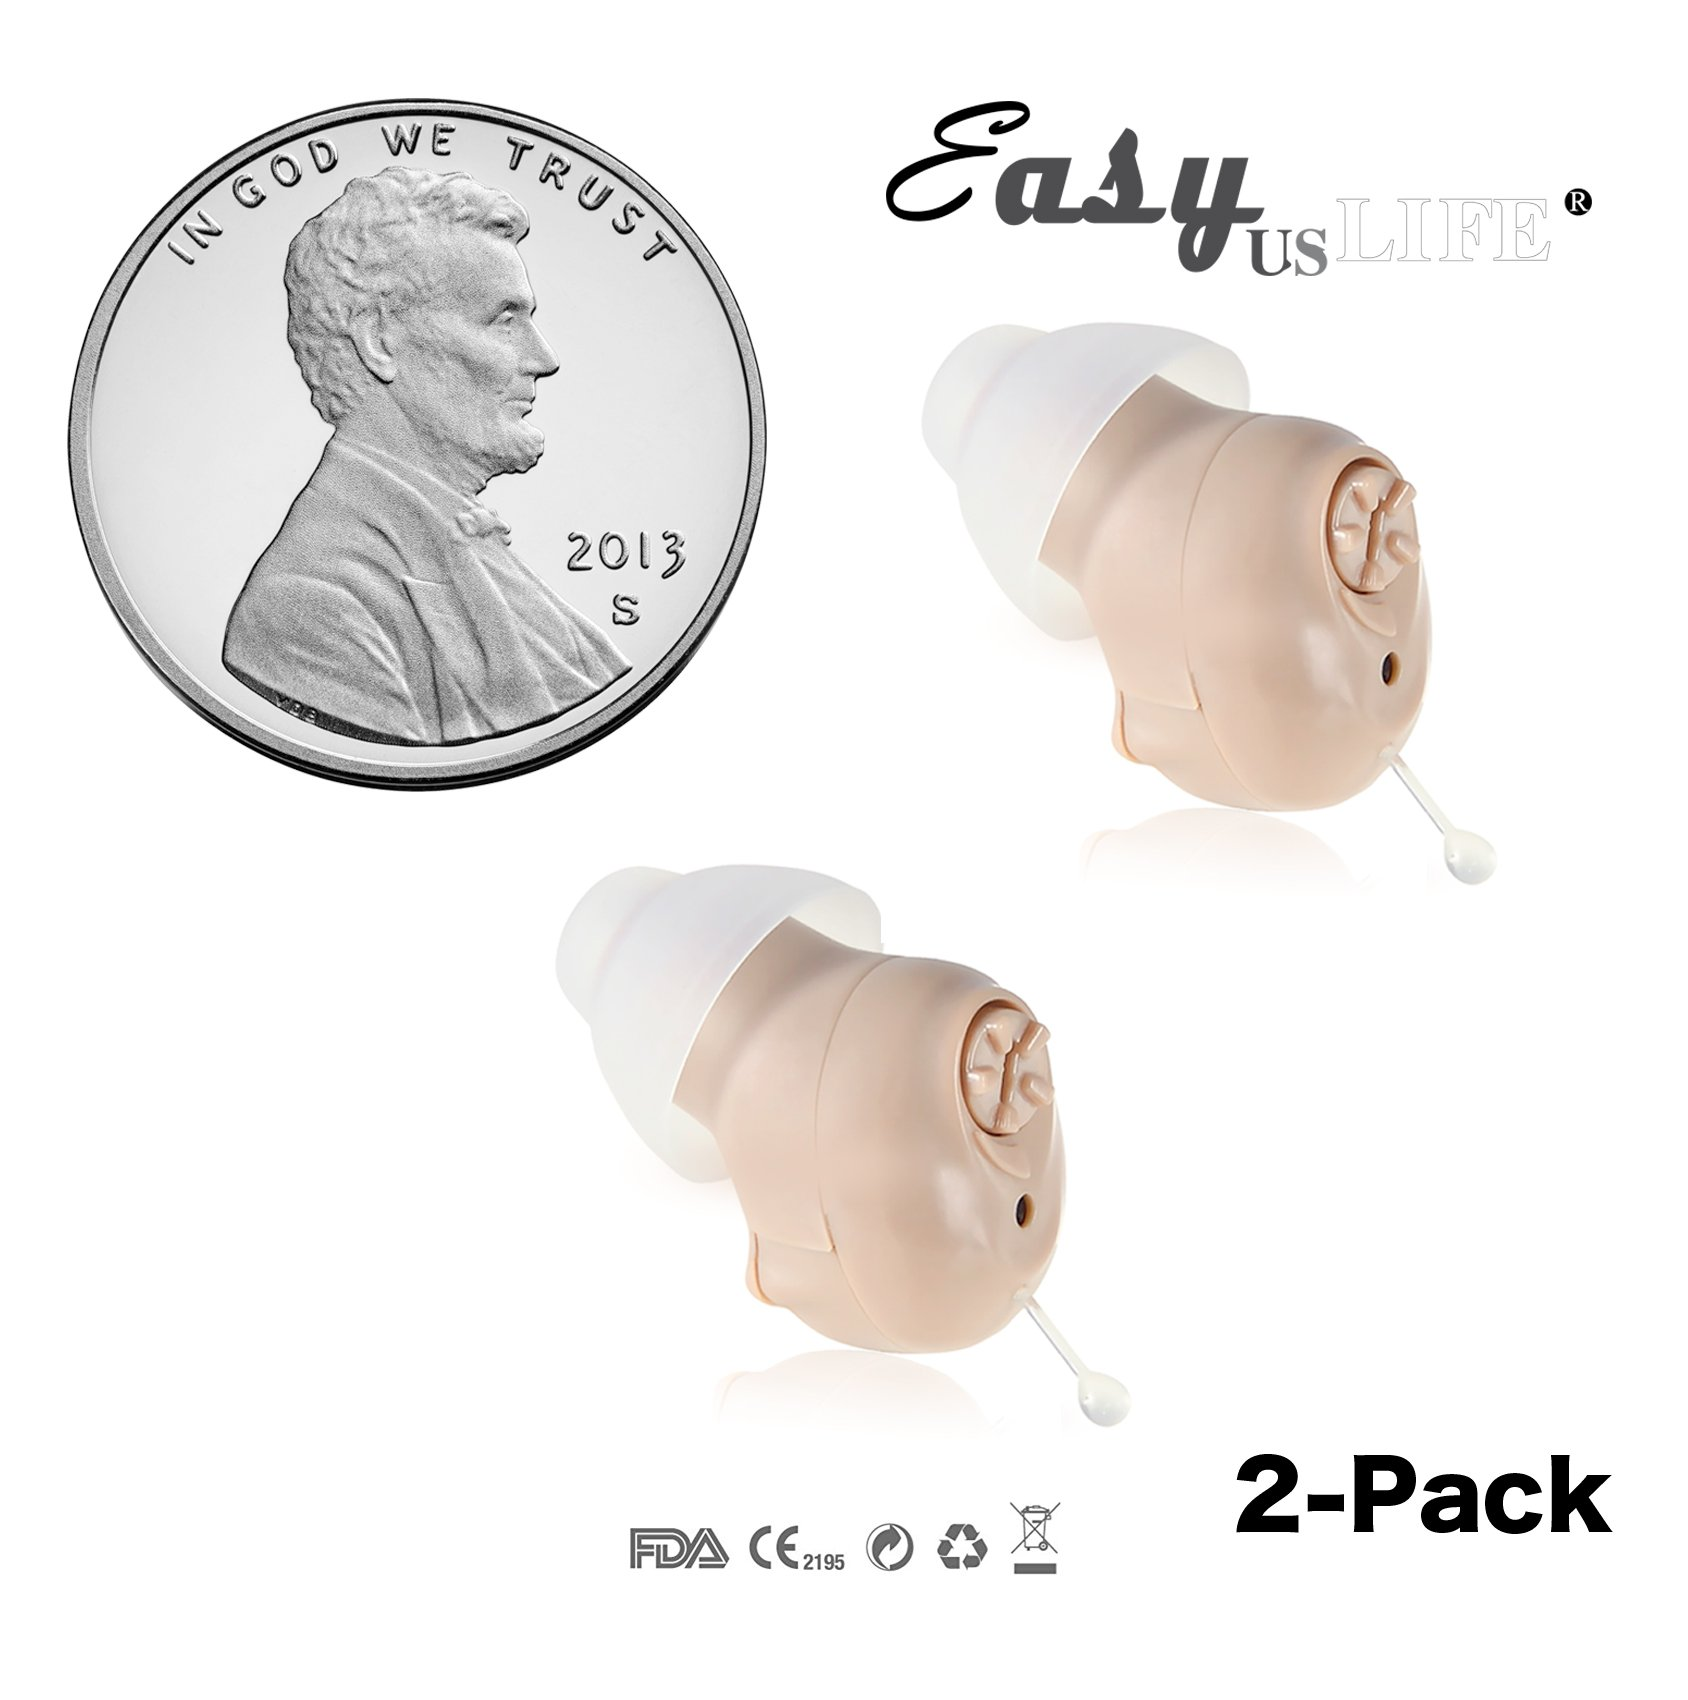 Super Mini Size, Half Penny-Sized ,In-The-Canal (ITC) ,2-Pack, New Digital Hearing Amplifiers ,Clearly Technology, Interchangeable , Suitable For Men and Women, Trademark: Easyuslife